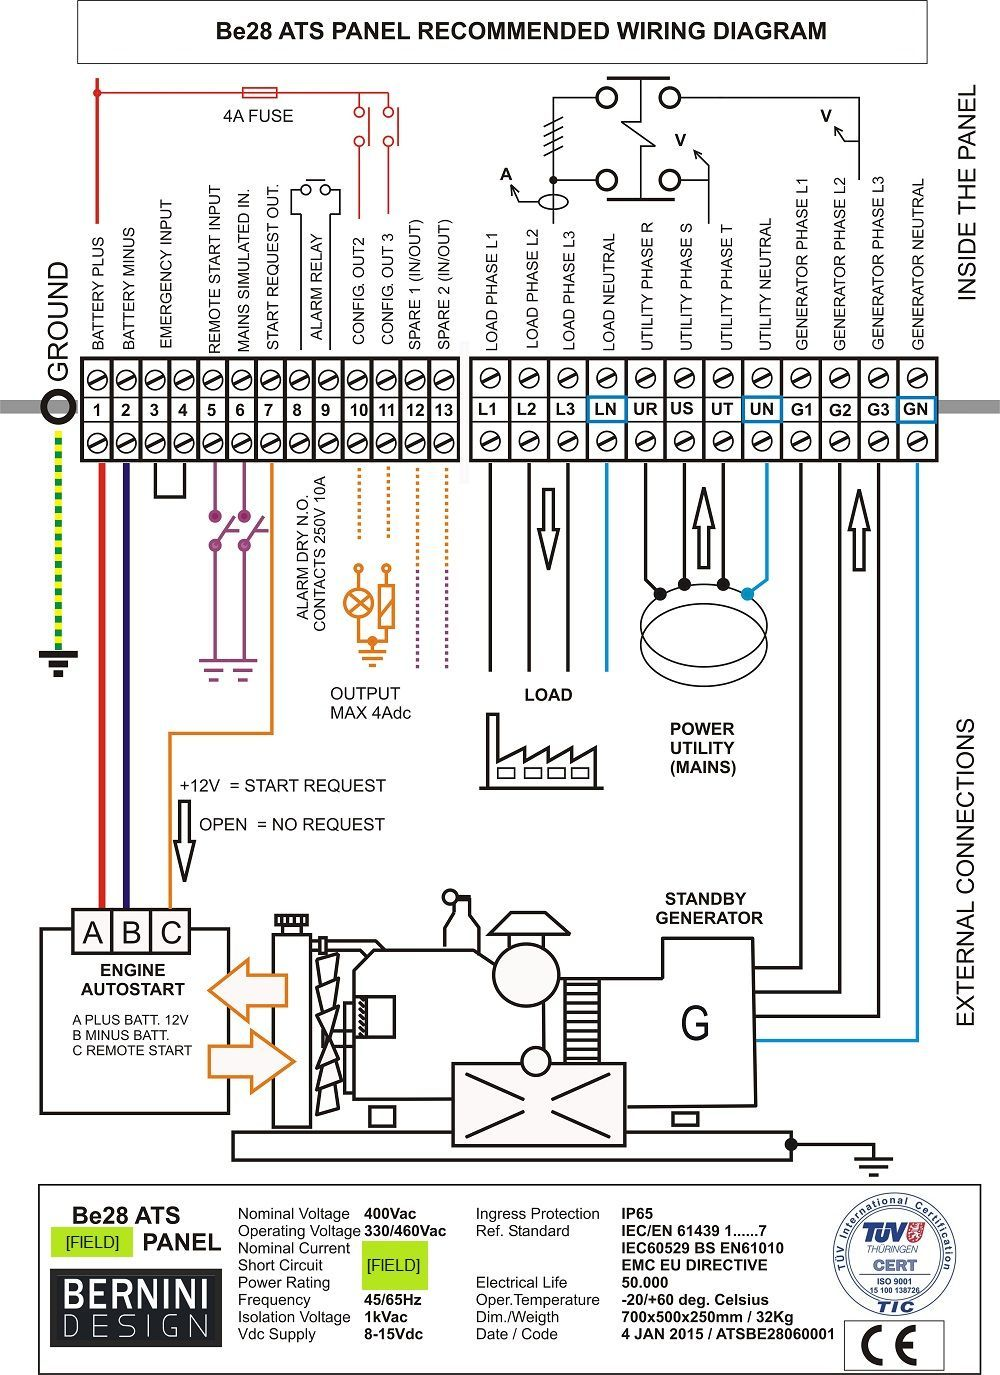 generator switchgear diagram wiring diagram librariesswitchgear wiring diagram 7 [ 1000 x 1375 Pixel ]